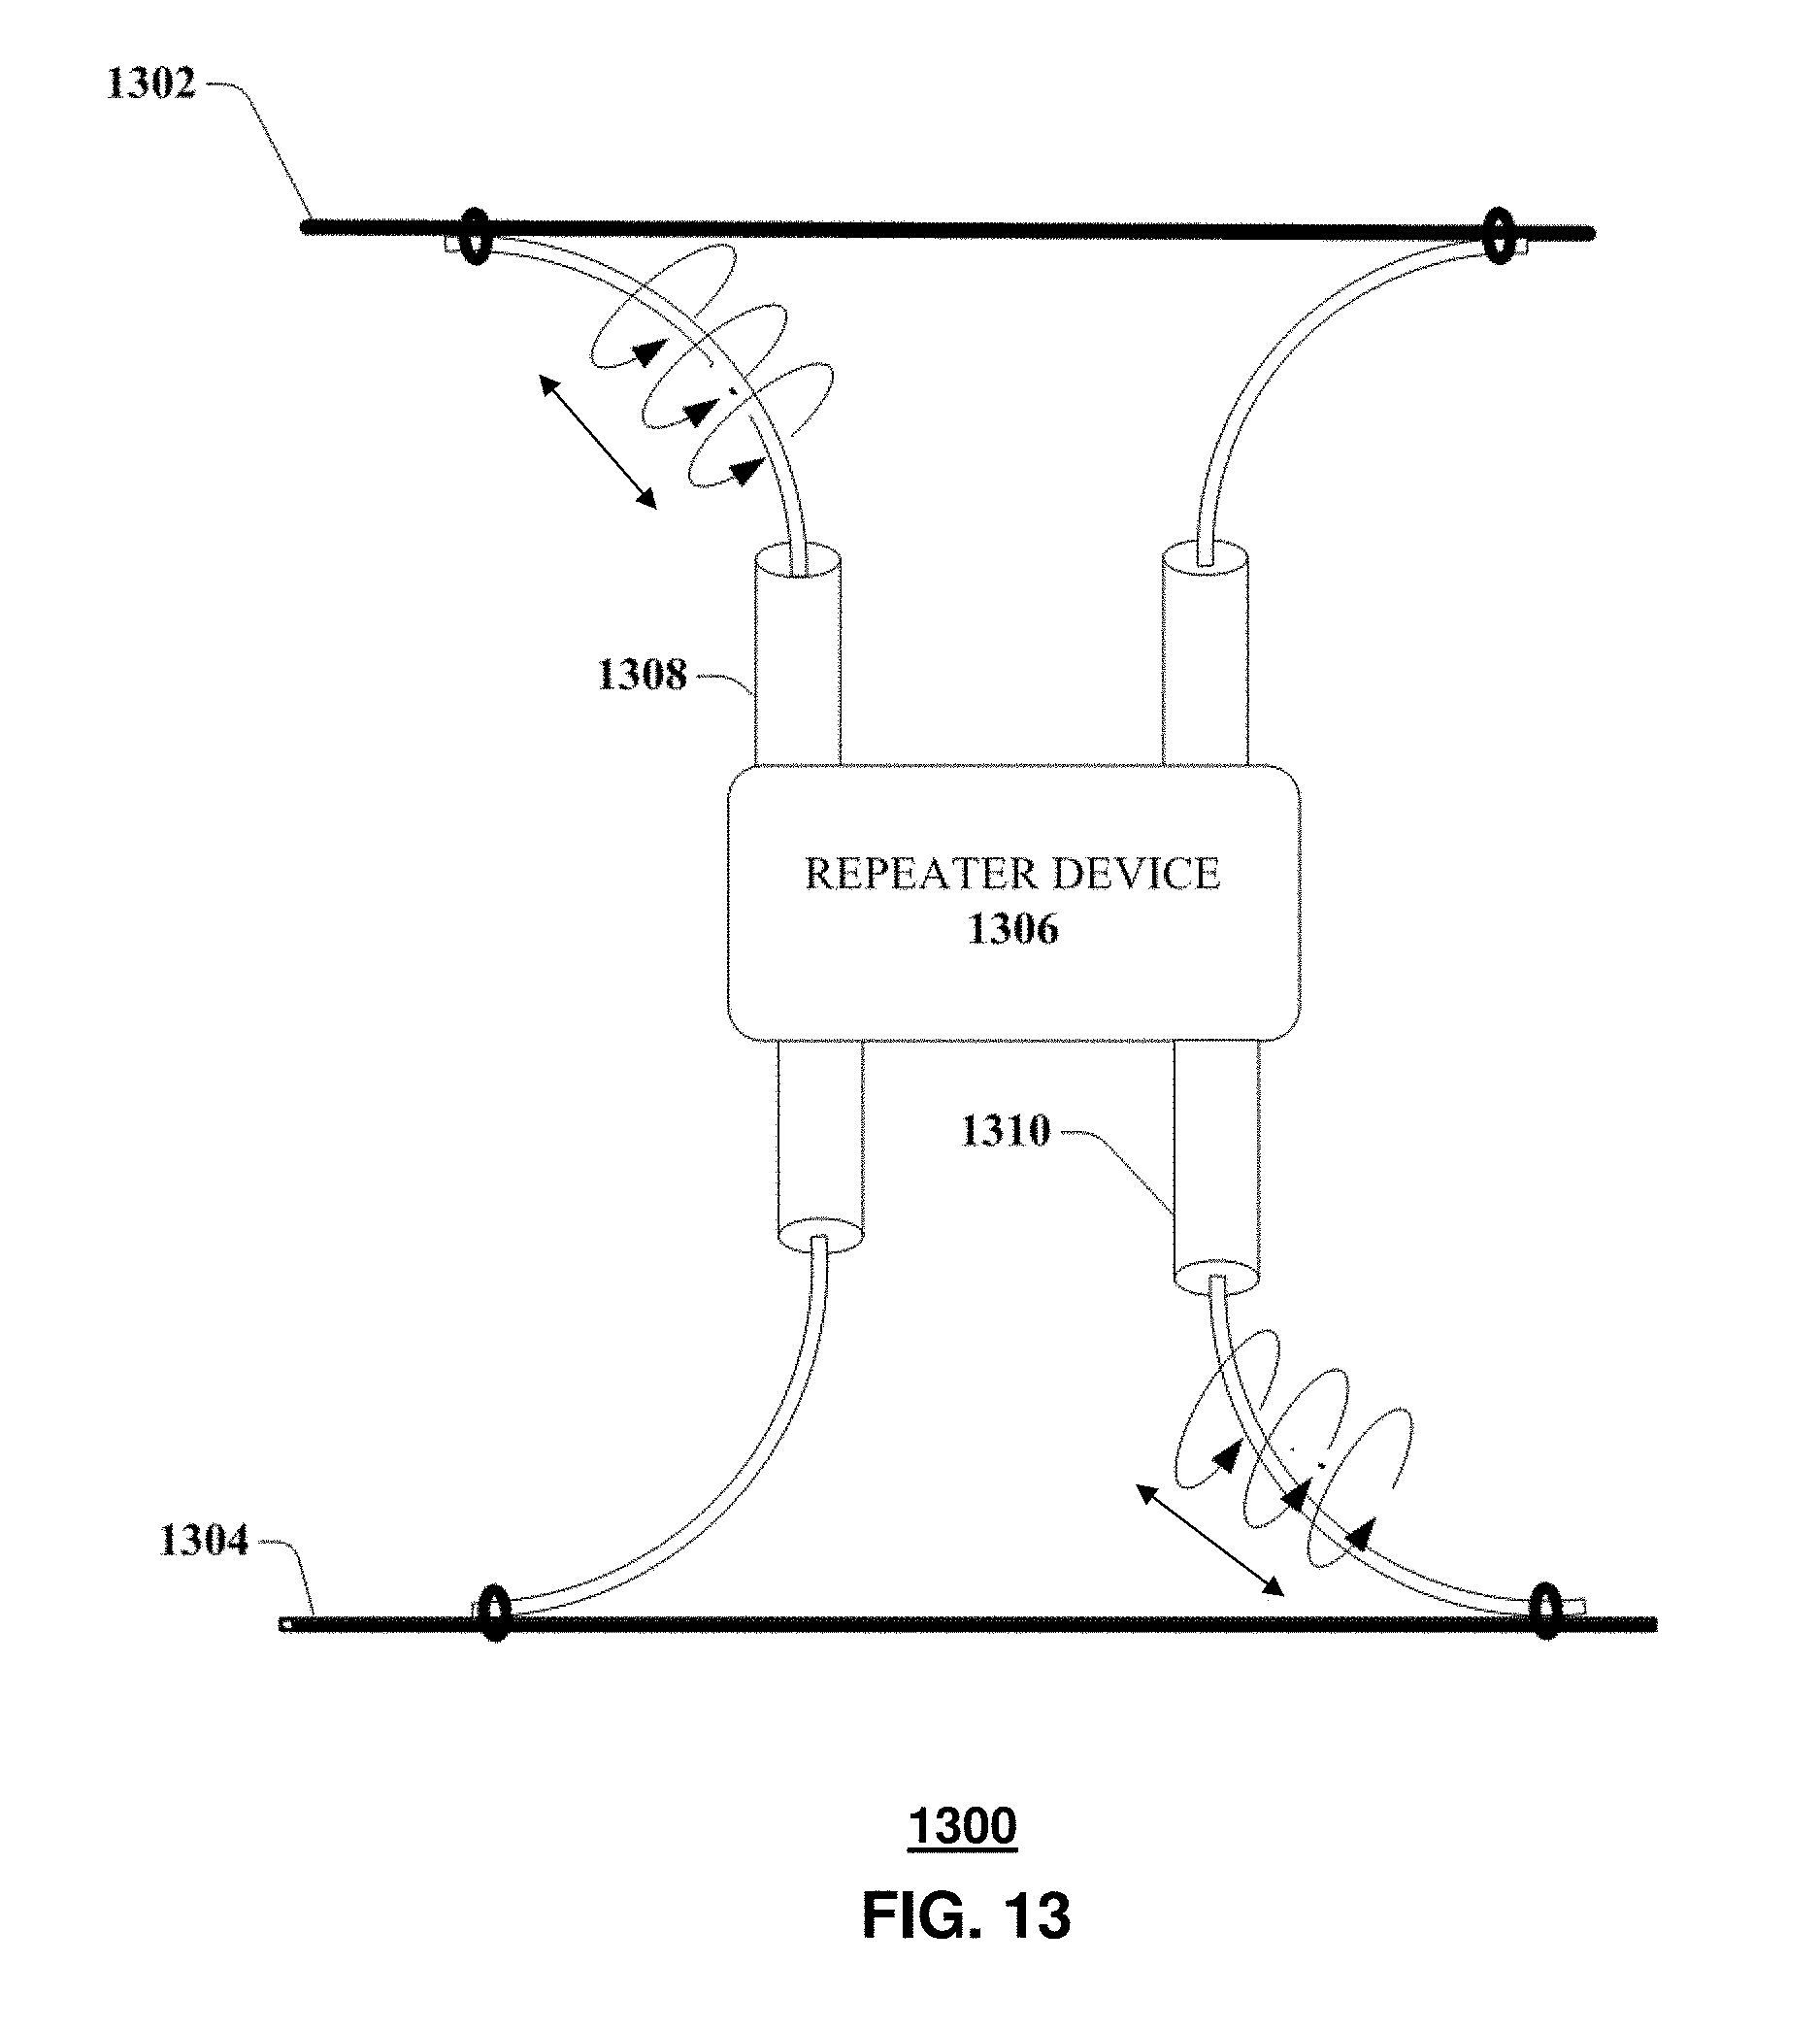 Us9748626b2 plurality of cables having different cross sectional shapes which are bundled together to form a transmission medium patents